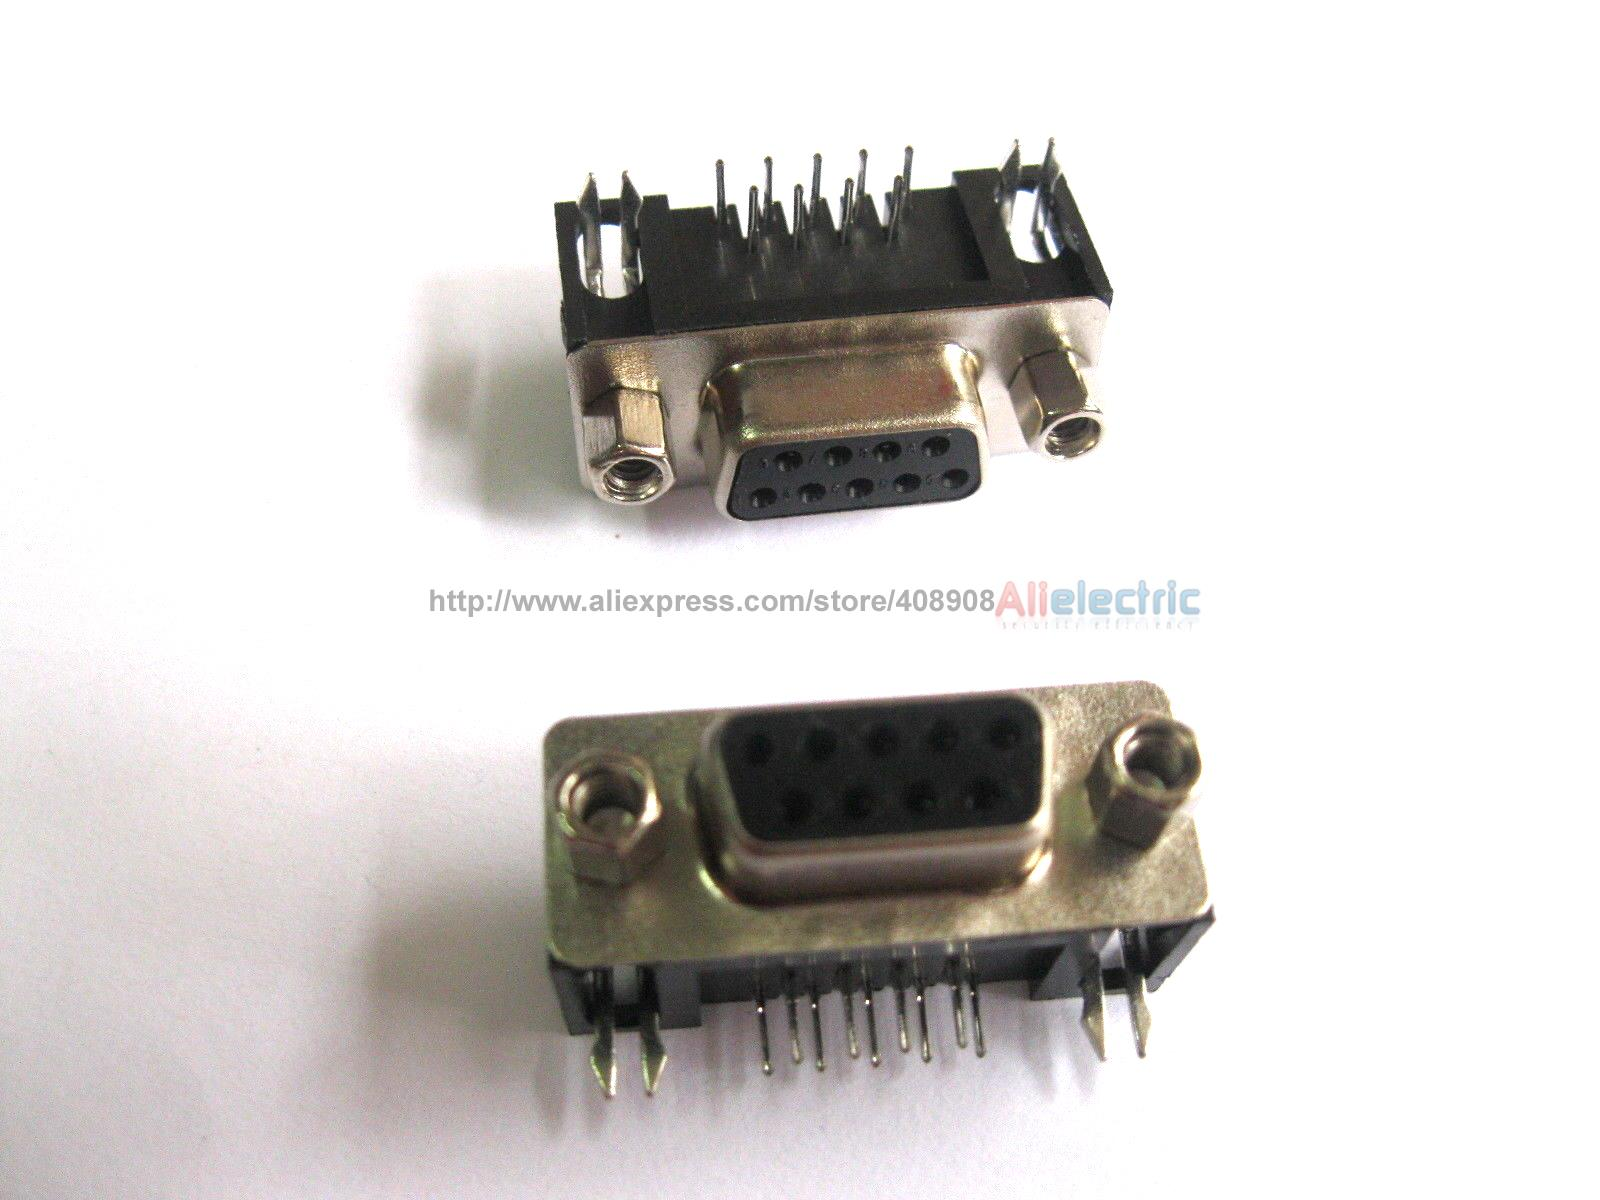 30 Pcs D Sub 9 Pin Female Connector with Right Angle